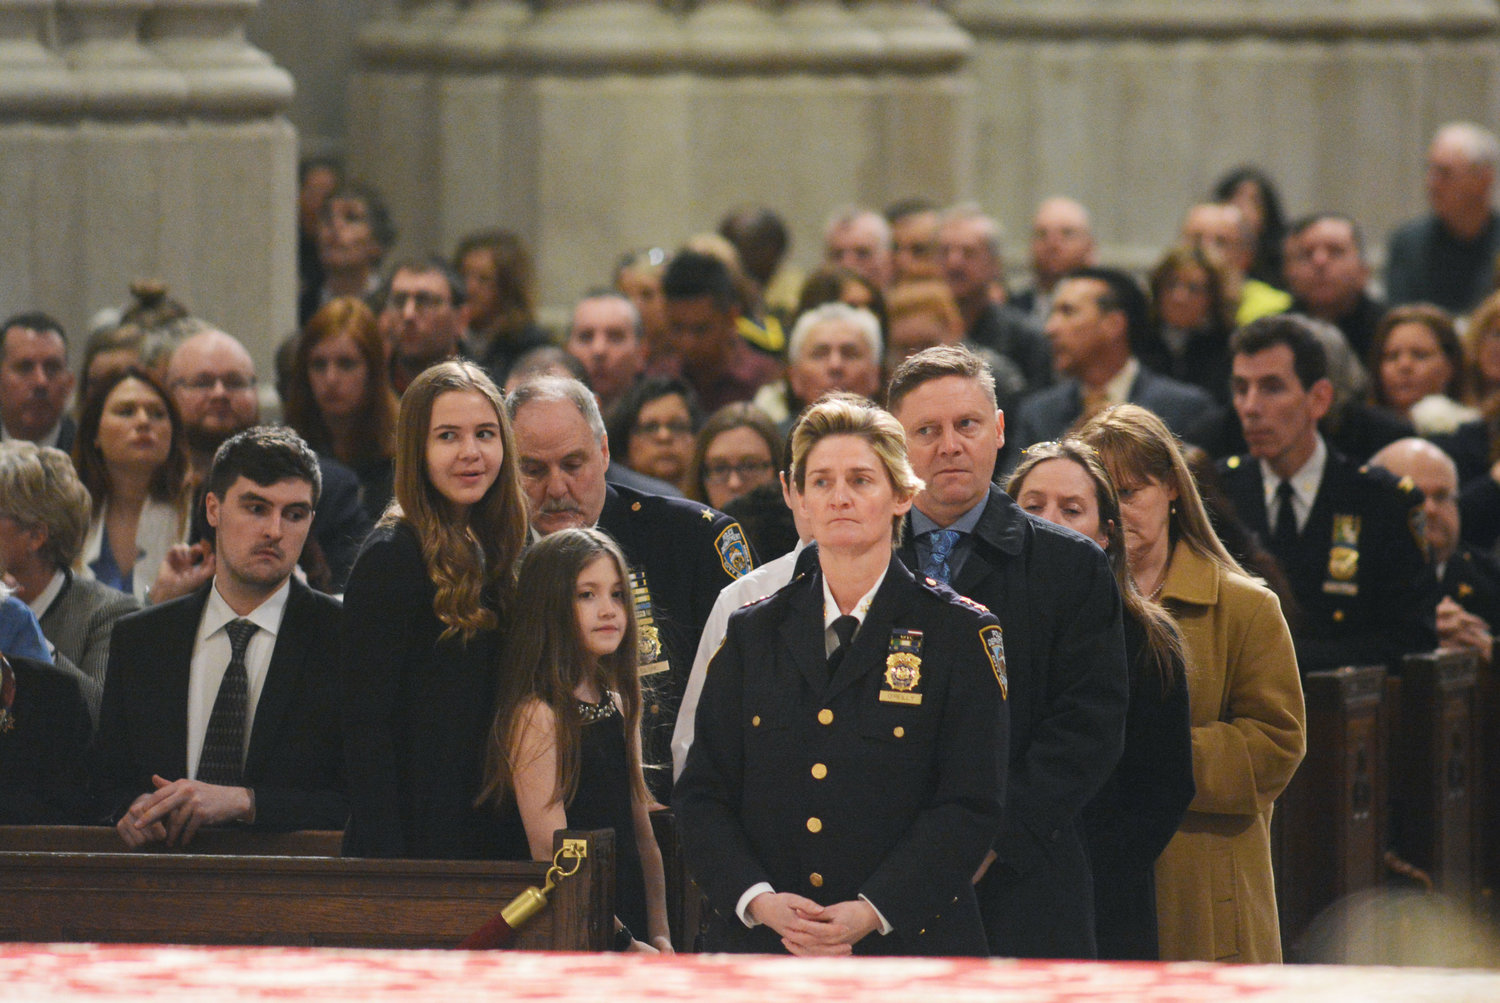 Assistant Chief Kathleen O'Reilly, commanding officer of Manhattan North, attends the annual NYPD Holy Name Society Mass at St. Patrick's Cathedral March 24. She was honored as Person of the Year at the 101st annual Holy Name Society Mass and Communion breakfast.